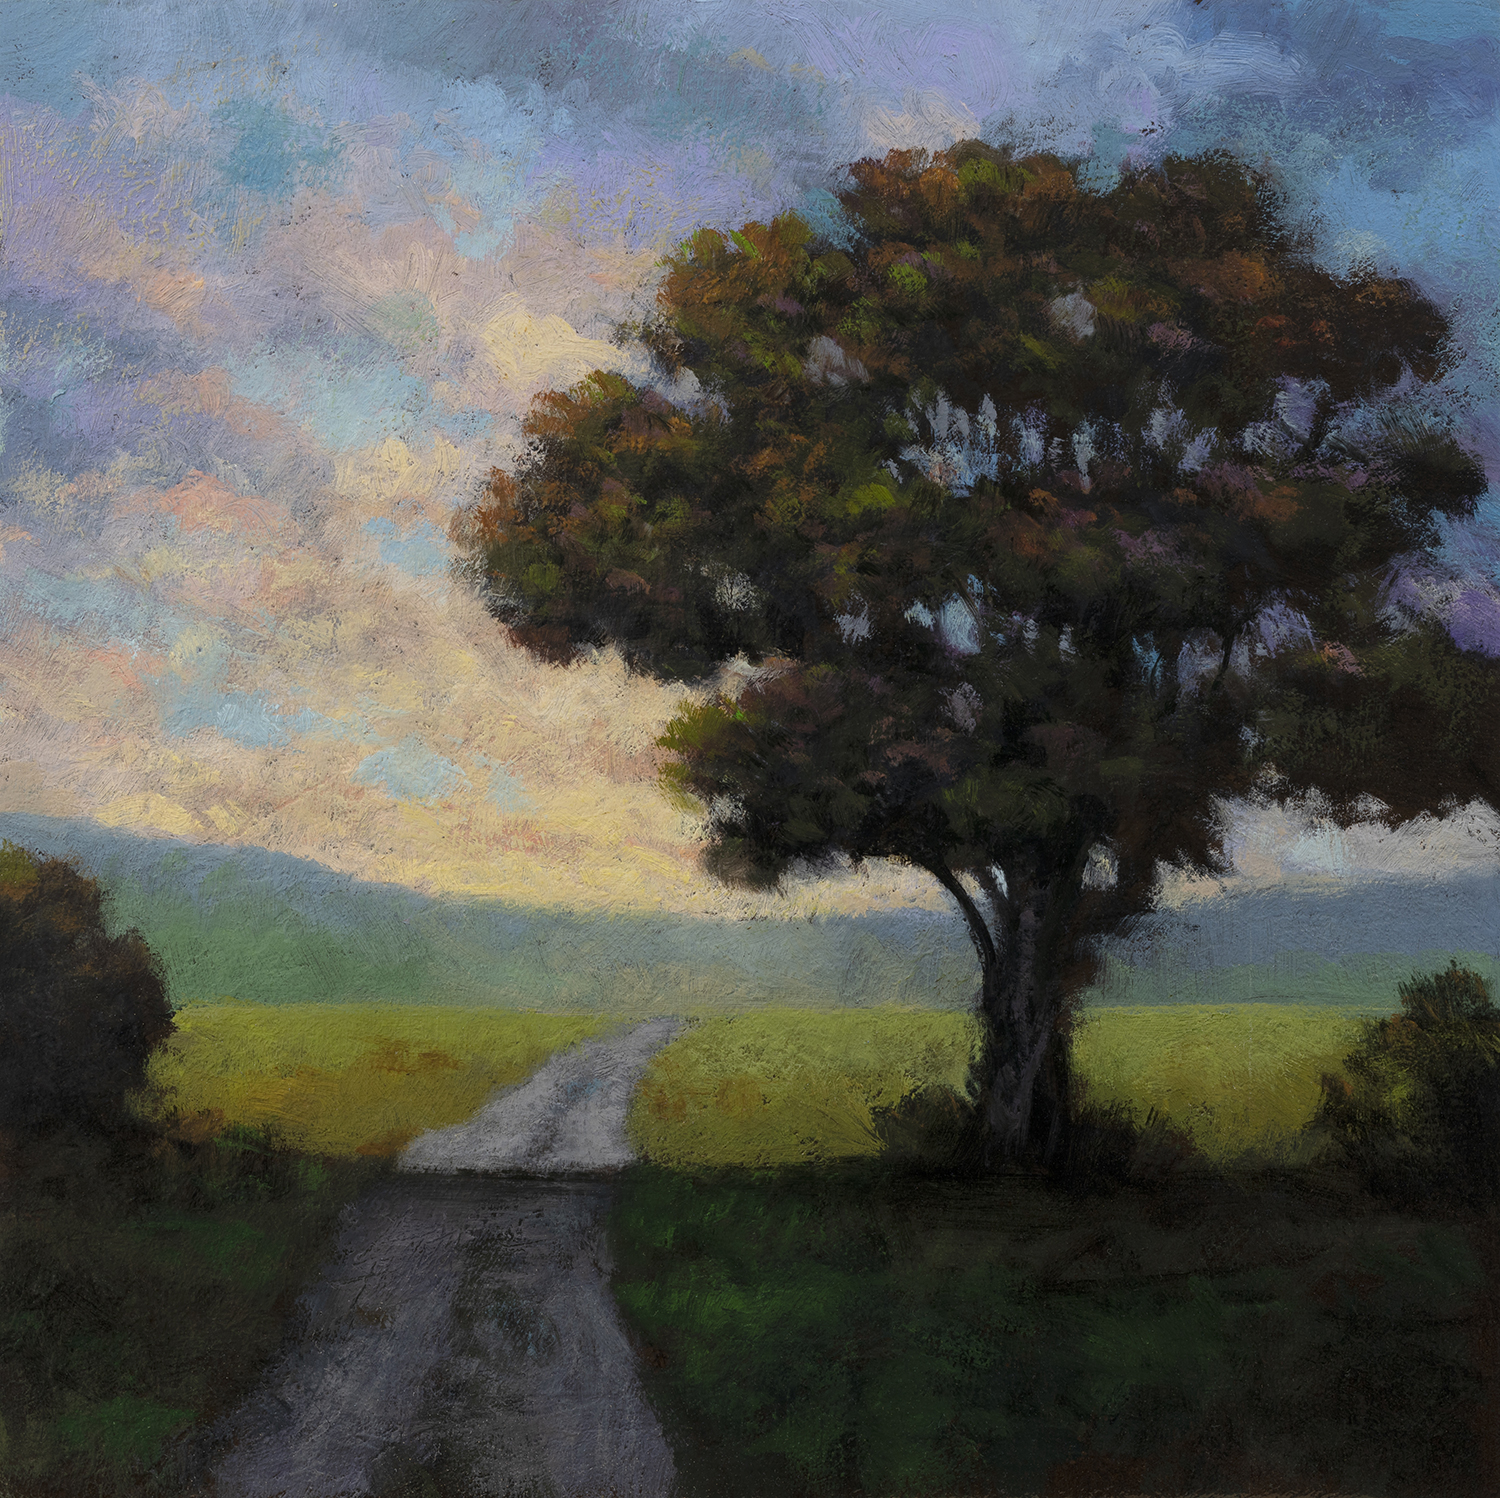 Into the Field by M Francis McCarthy - 8x8 Oil on Wood Panel